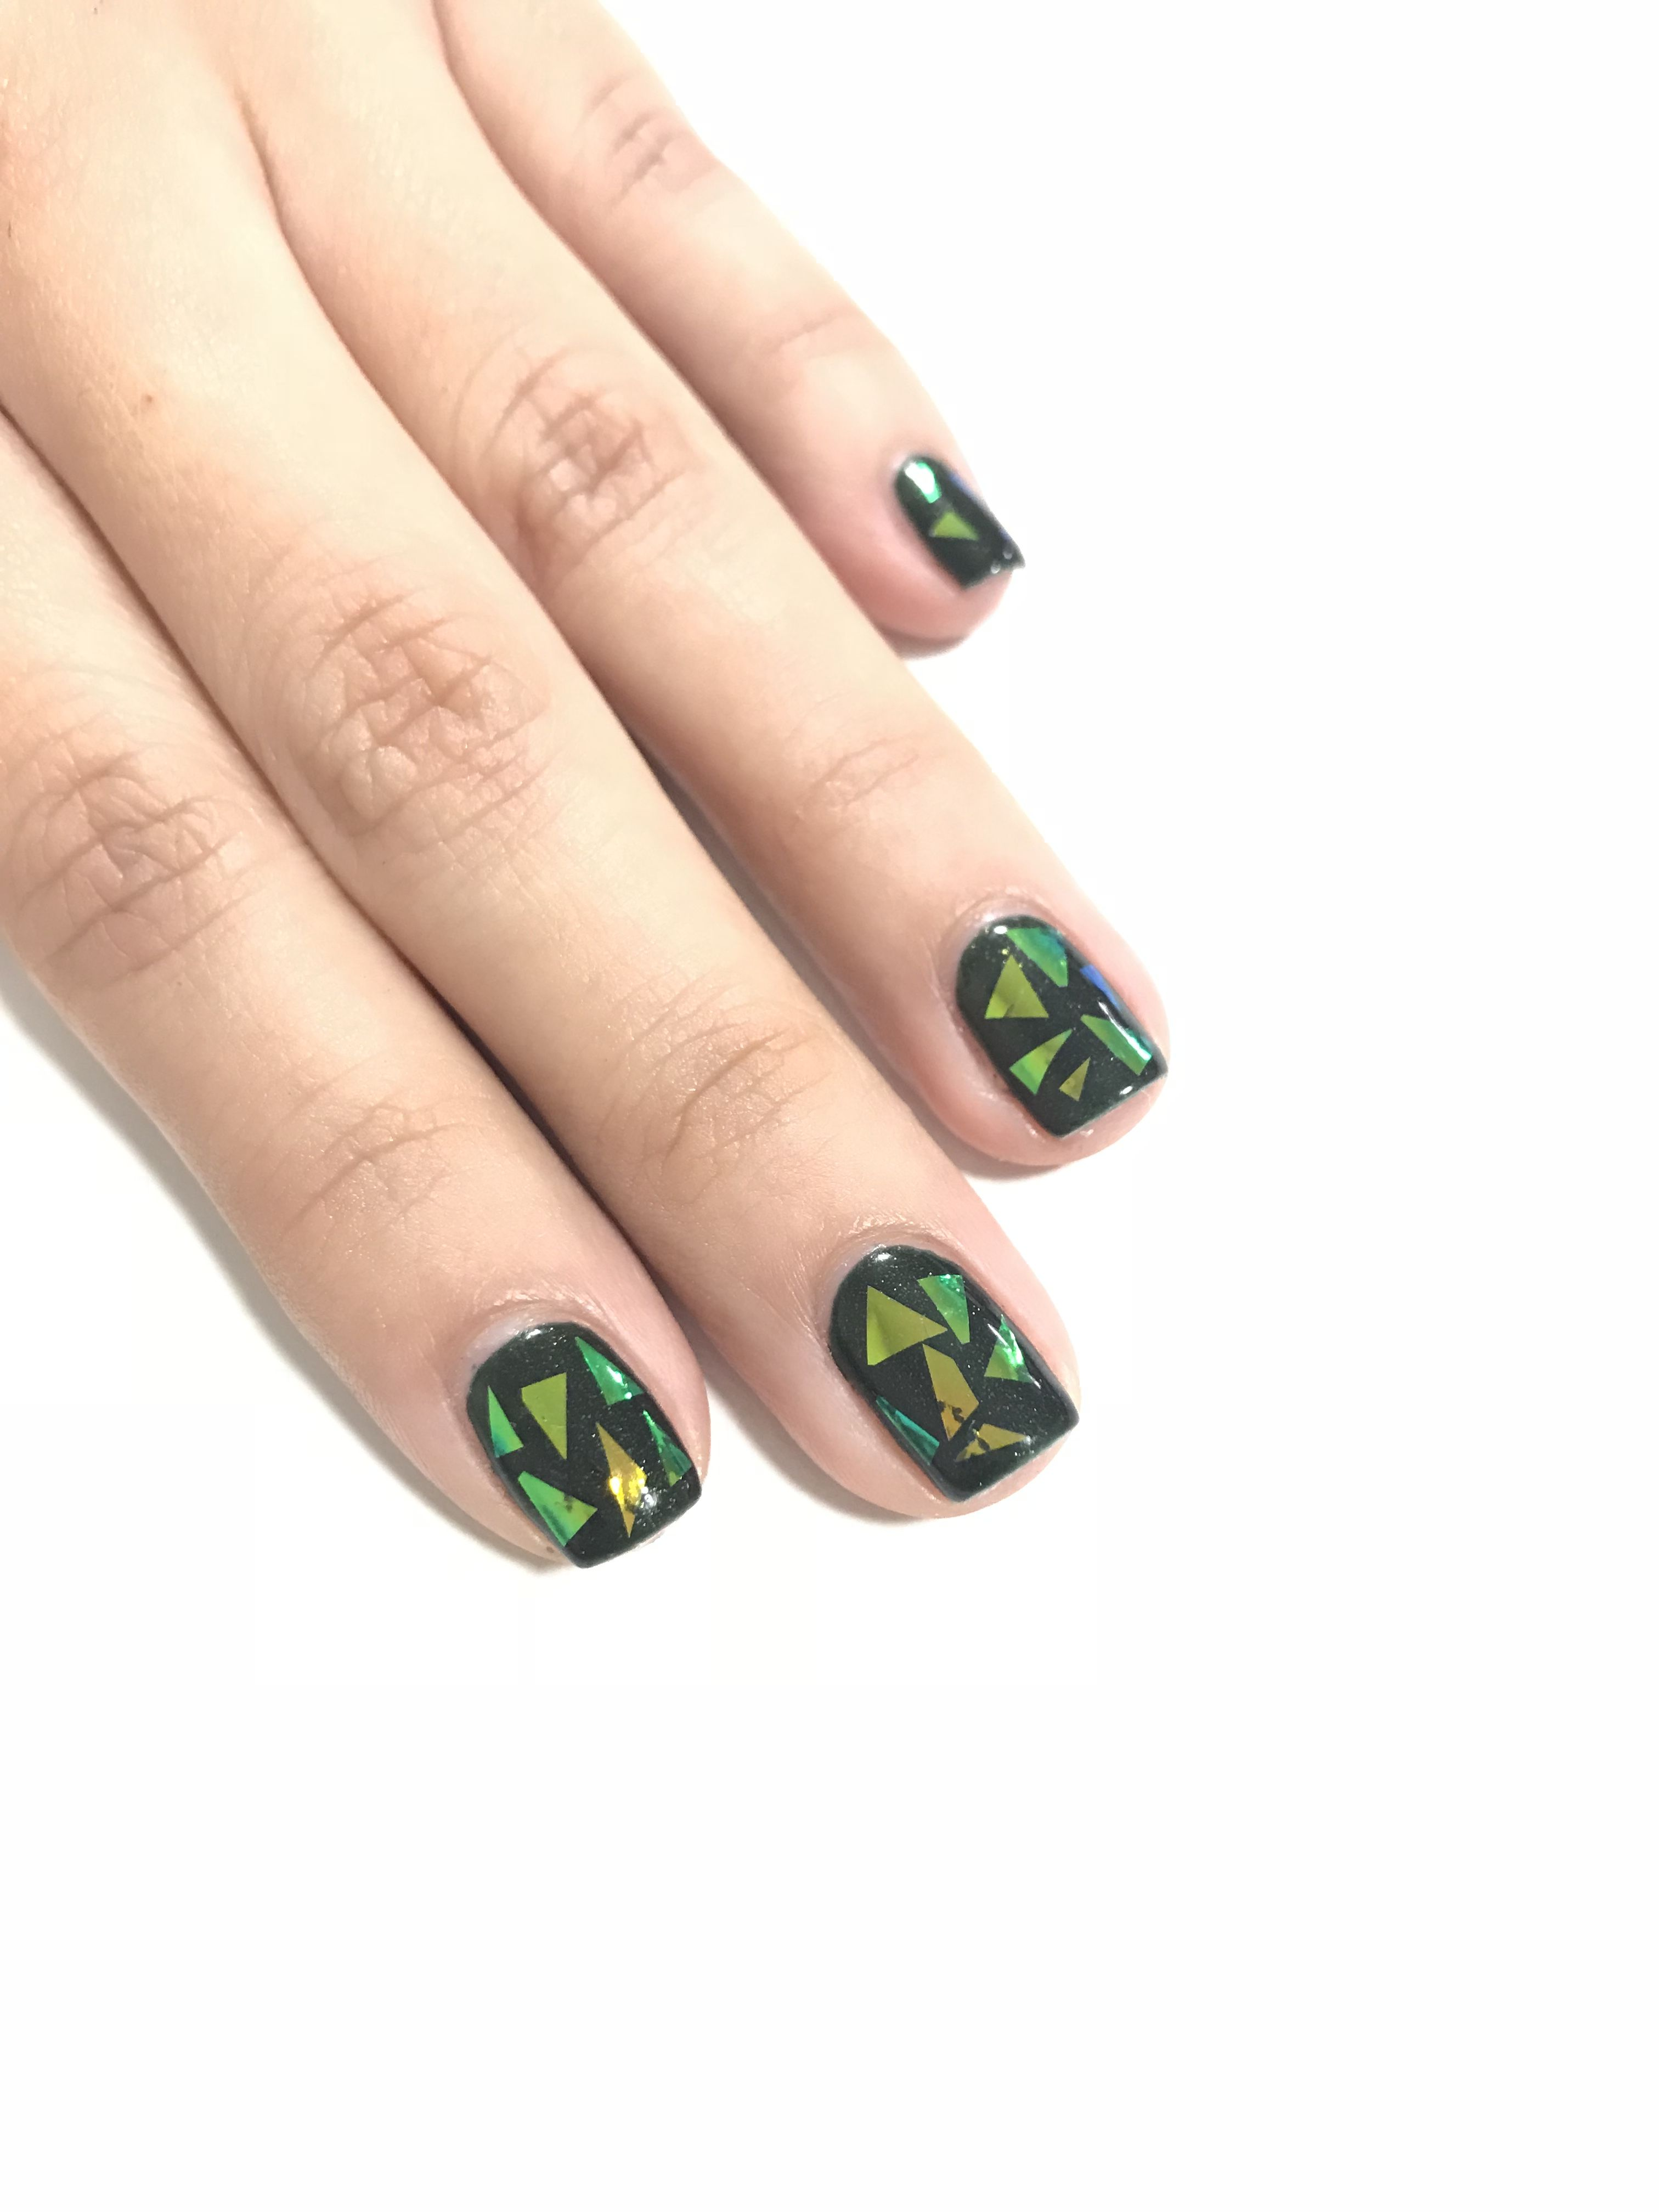 Shatters Glass Nail Art By Diane Diaz Cnd Shellac Manicure Nail